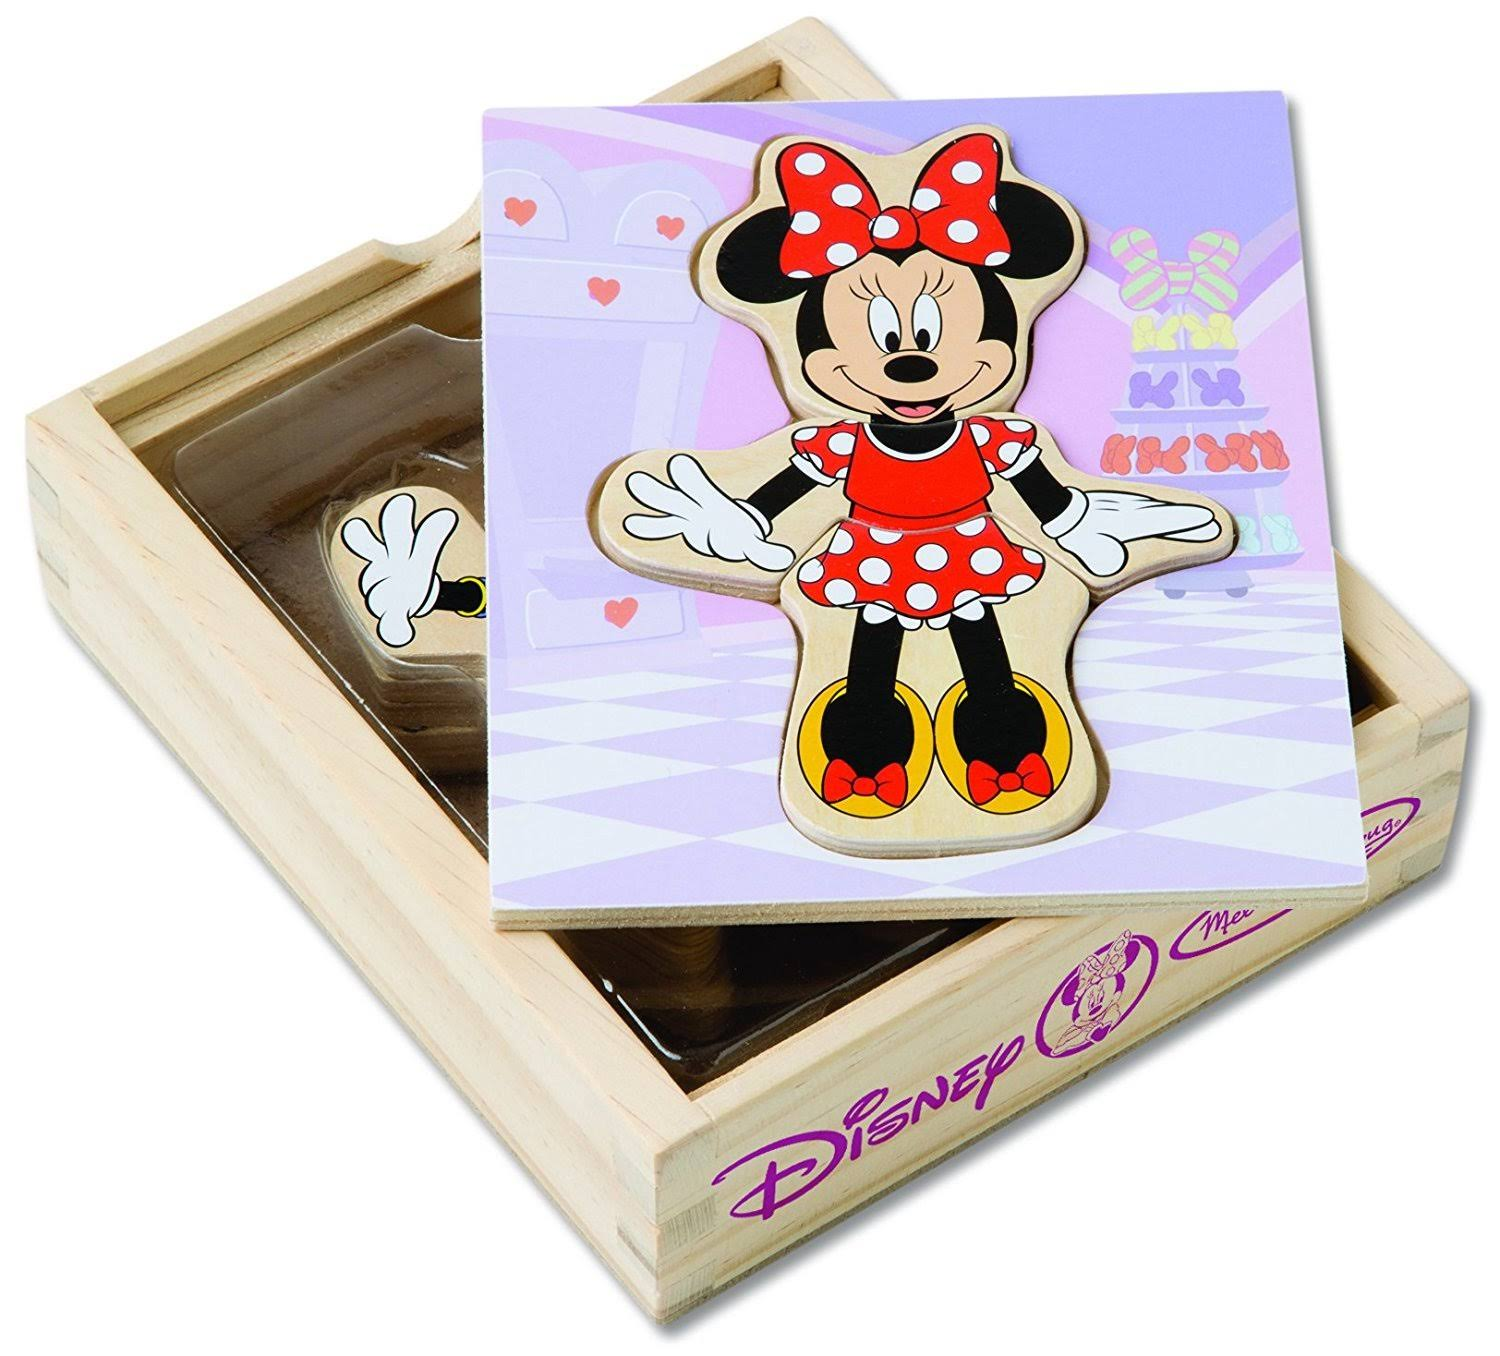 Melissa & Doug Disney Minnie Mouse Magnetic Dress-Up Wooden Doll Pretend Play Set